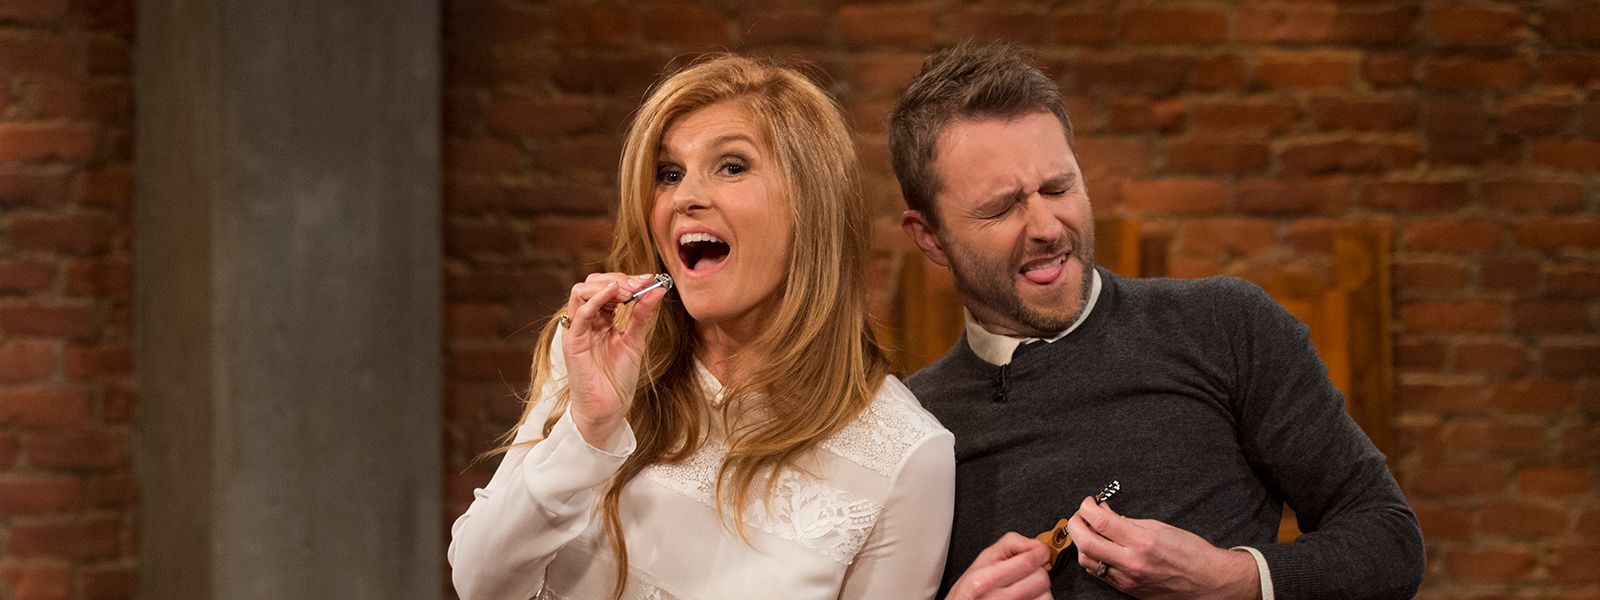 talking-with-chris-hardwick-episode-108-connie-britton-chris-hardwick-800×600